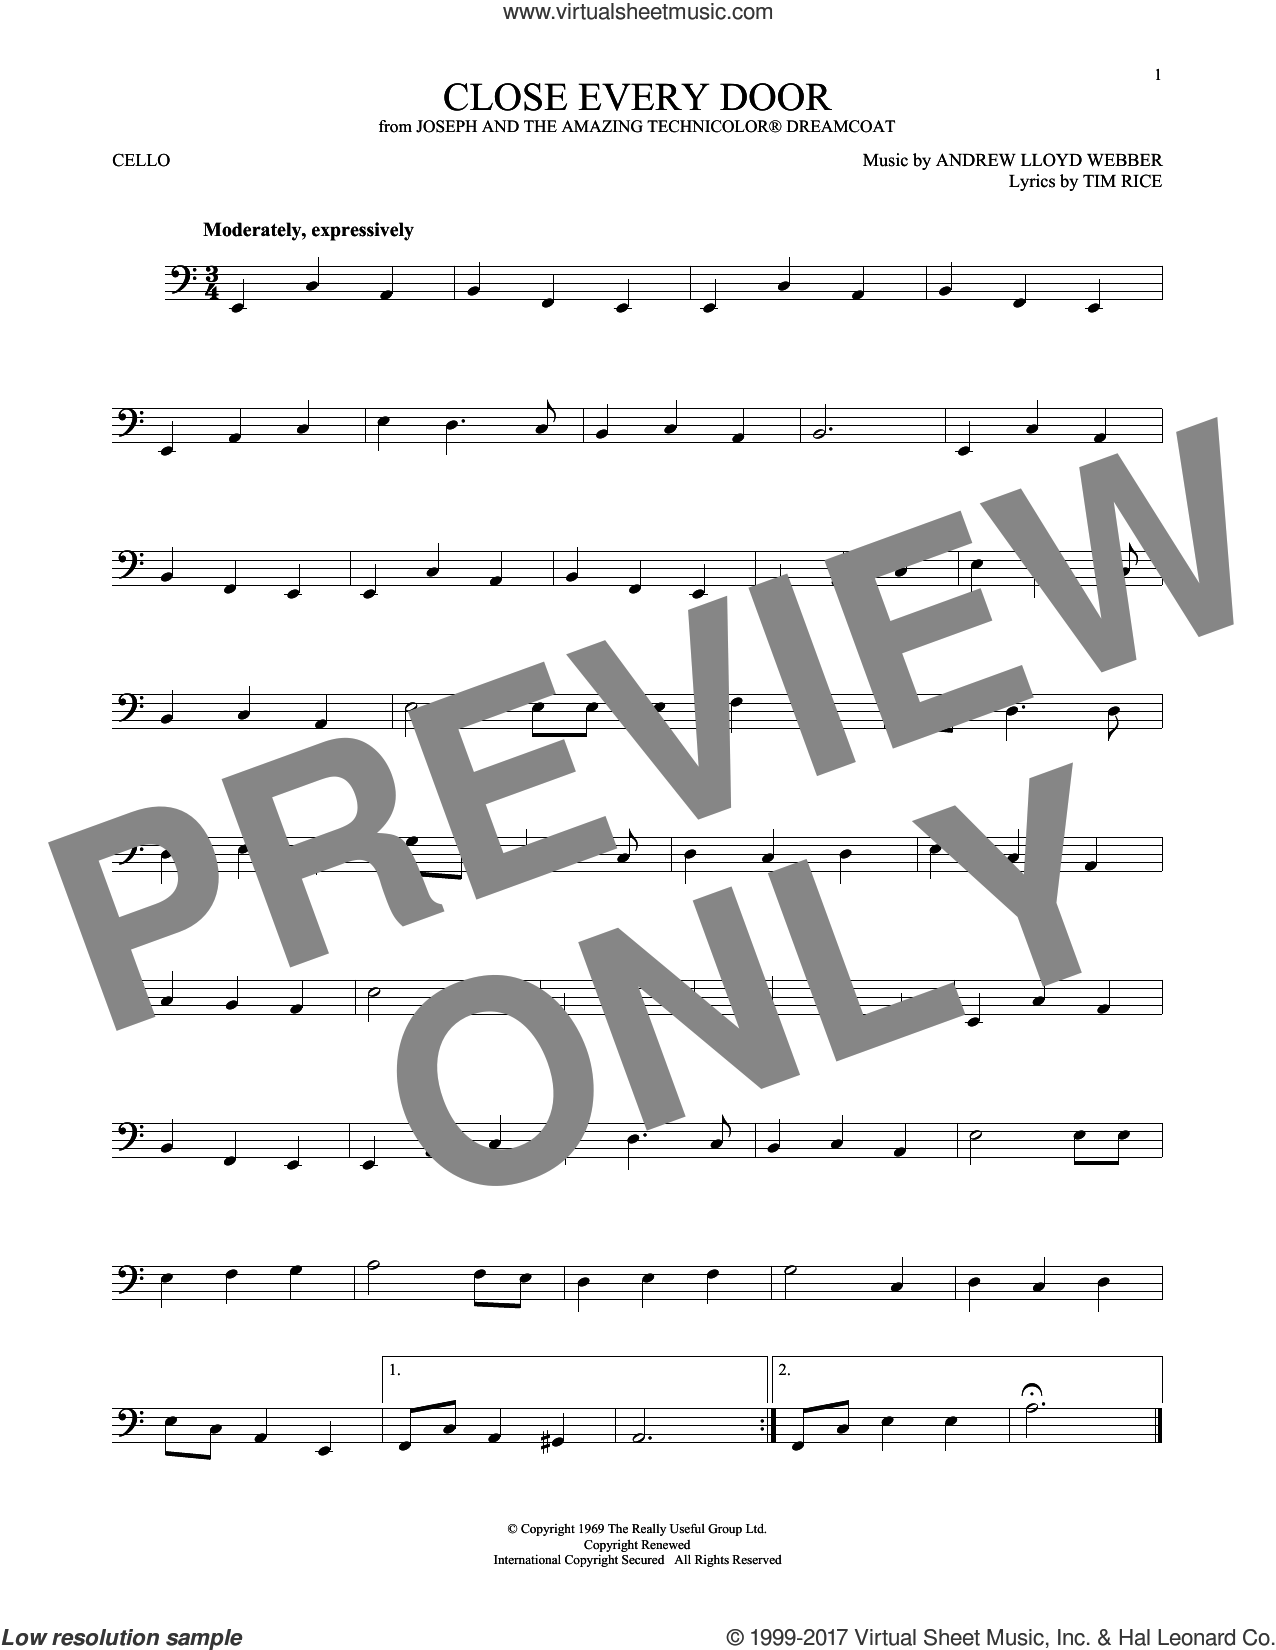 Close Every Door sheet music for cello solo by Andrew Lloyd Webber and Tim Rice, intermediate skill level